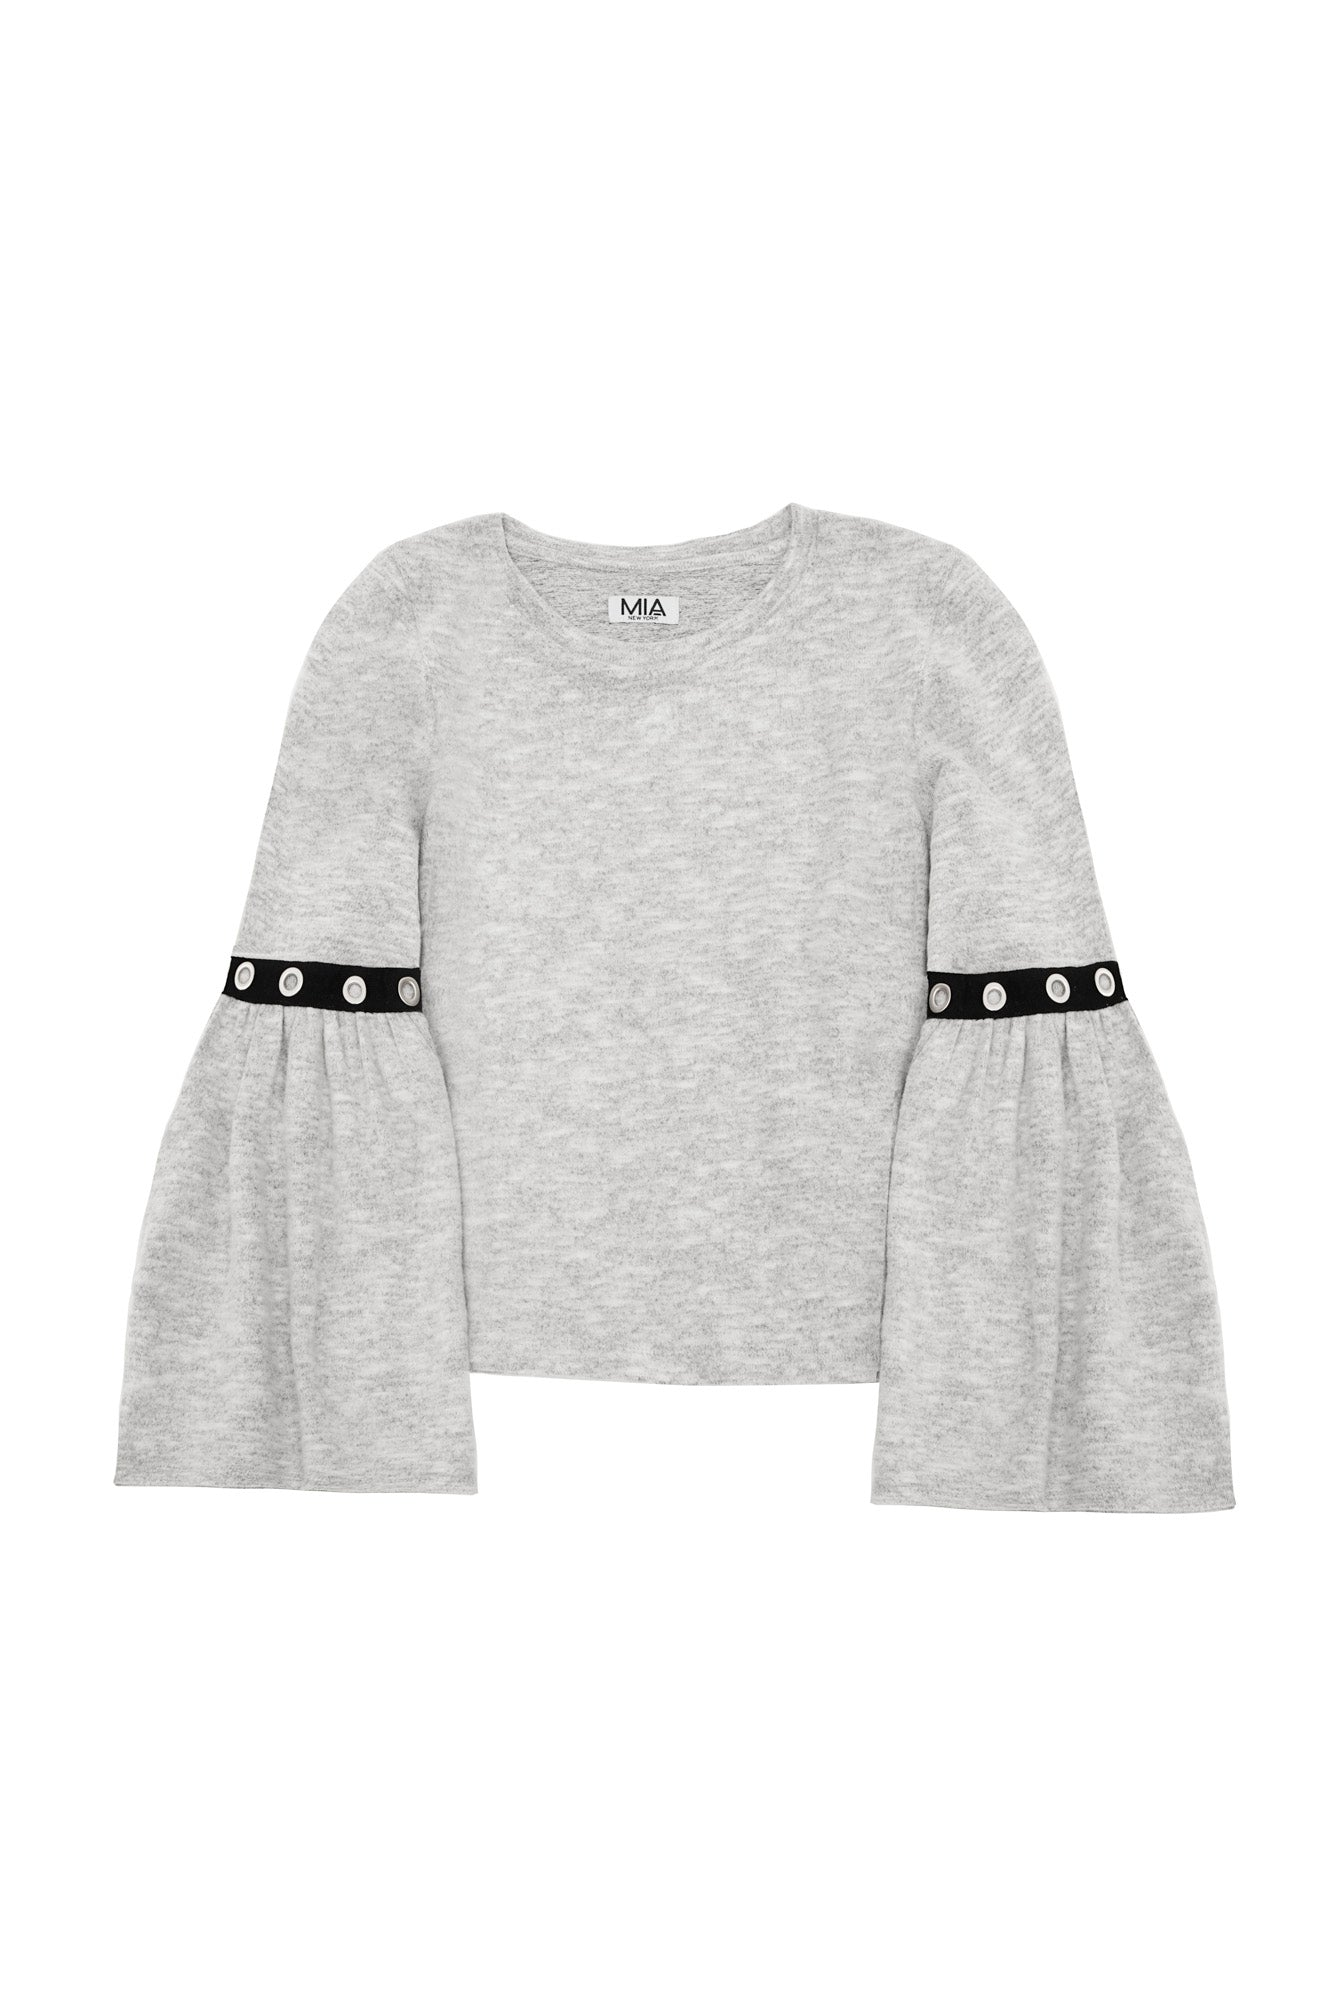 Cozy Heather Gray Sweater | Unique Finds for Kids